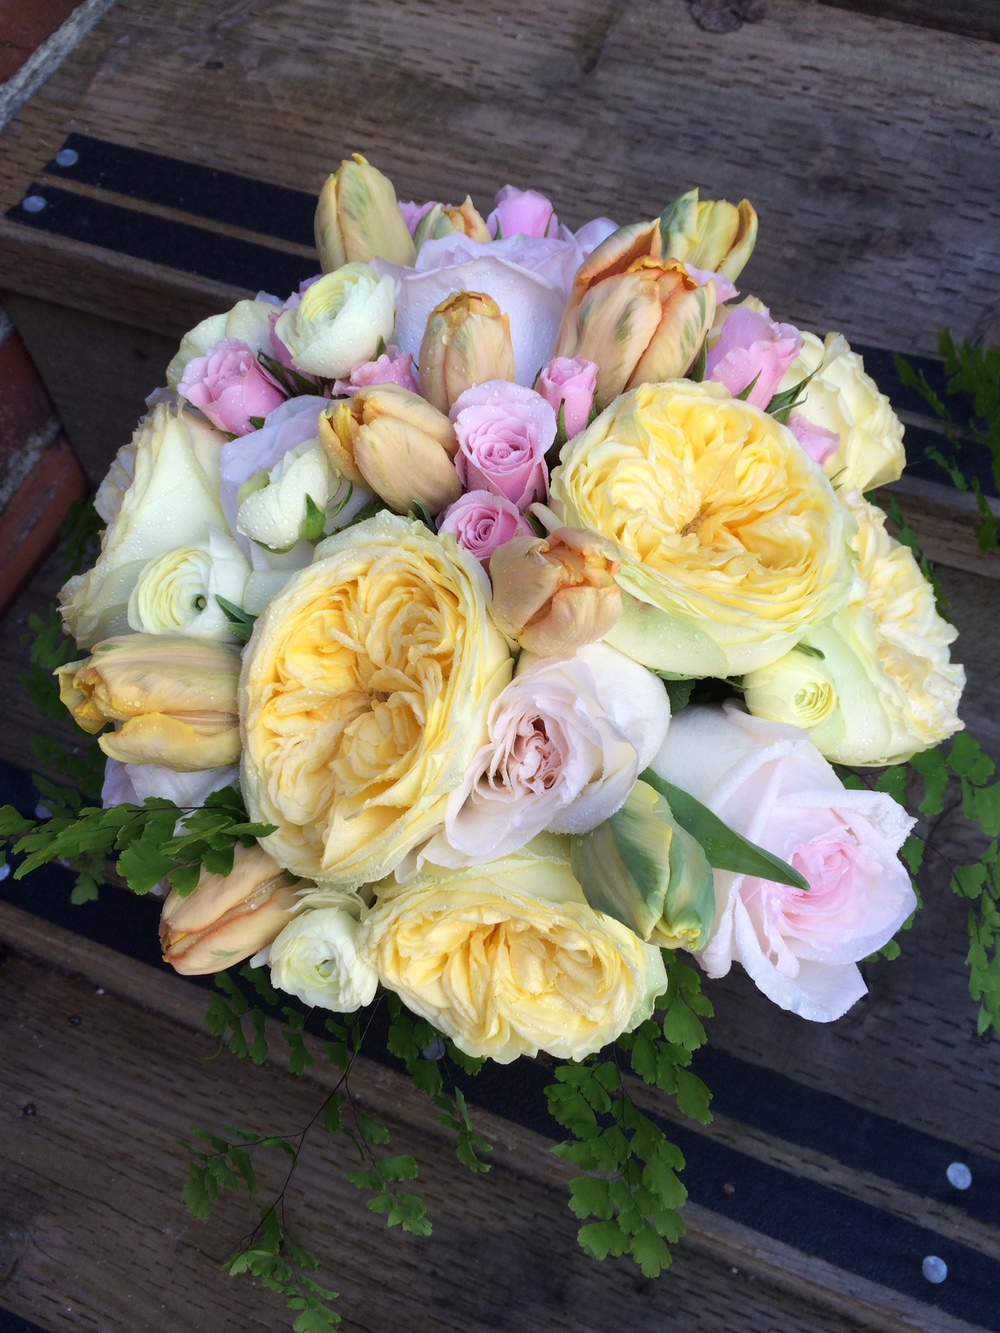 30. Pale Yellow and Cream Rounded Bouquet